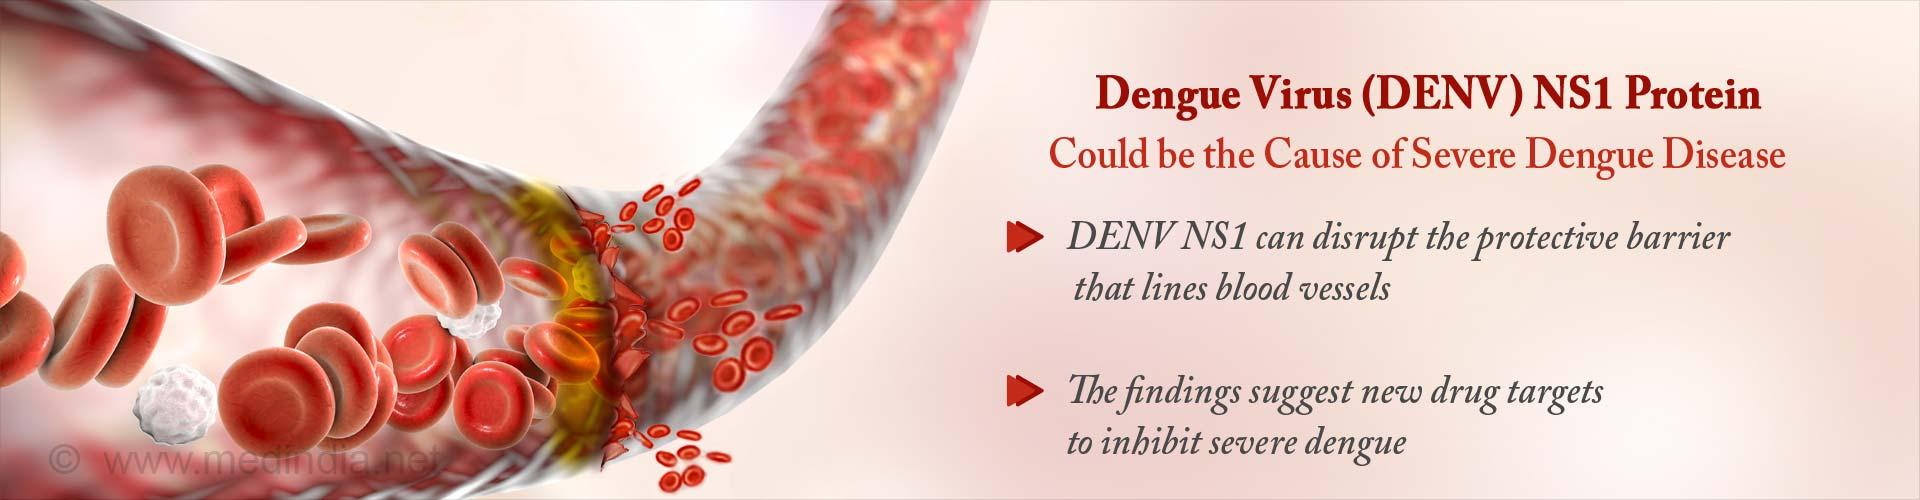 Likely Cause of Vascular Leakage Discovered in Severe Dengue